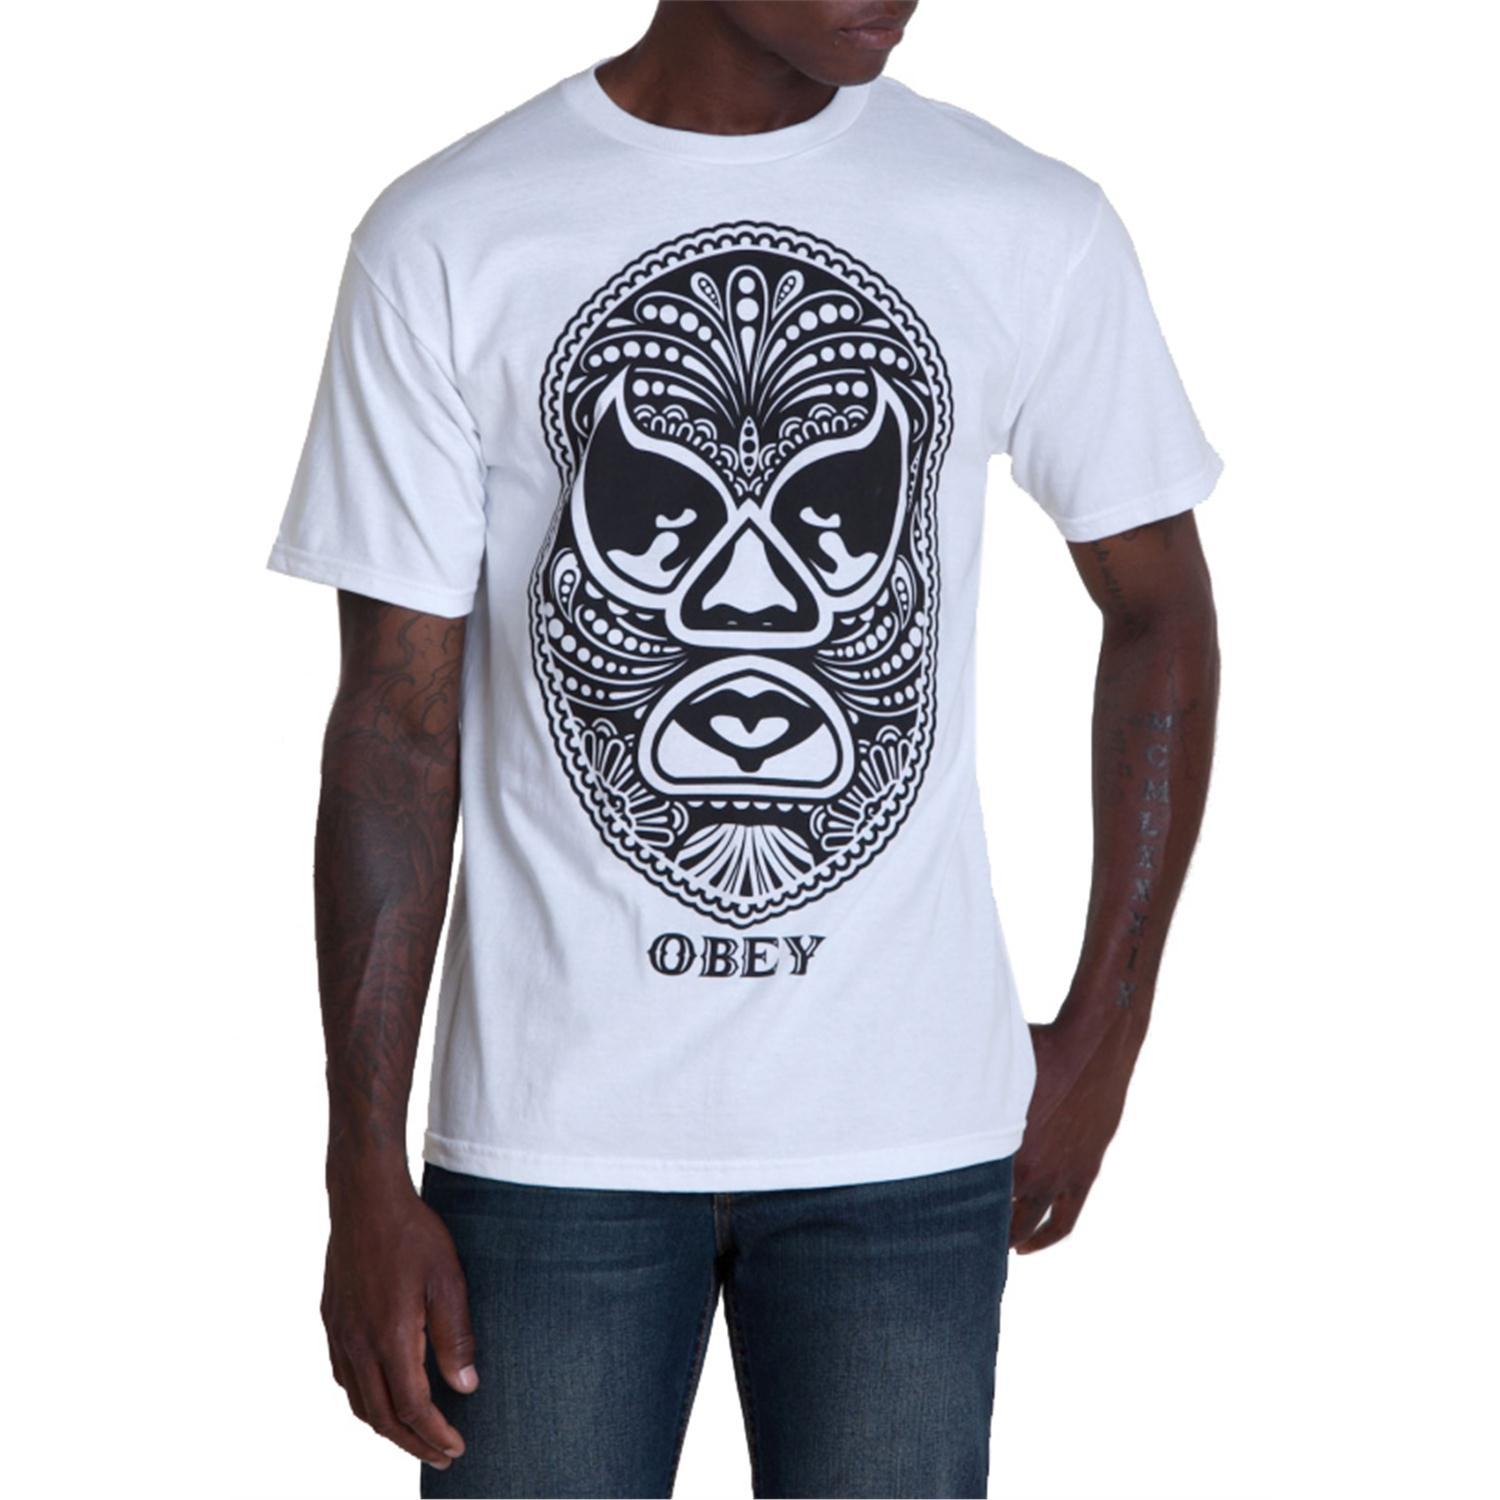 ... obey clothing sale obey clothing lowest price guarantee customer care